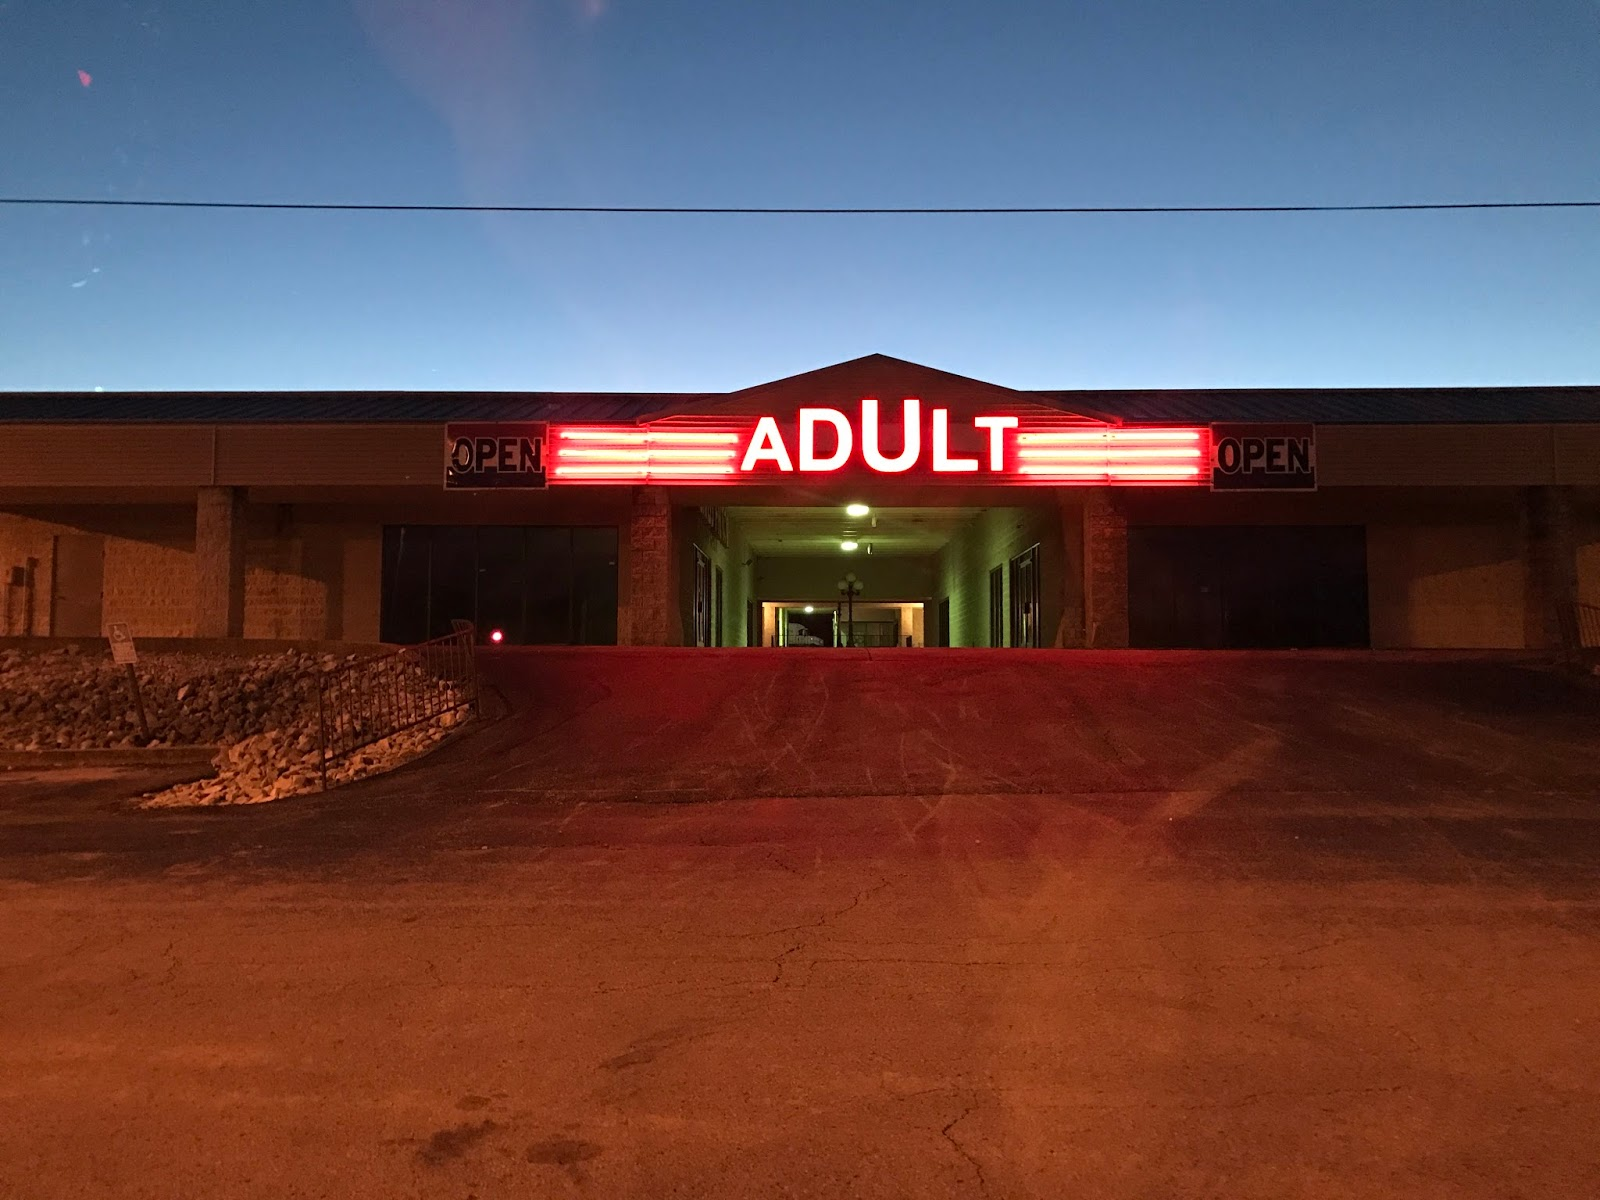 Best Adult video stores in Washington, DC - Yelp